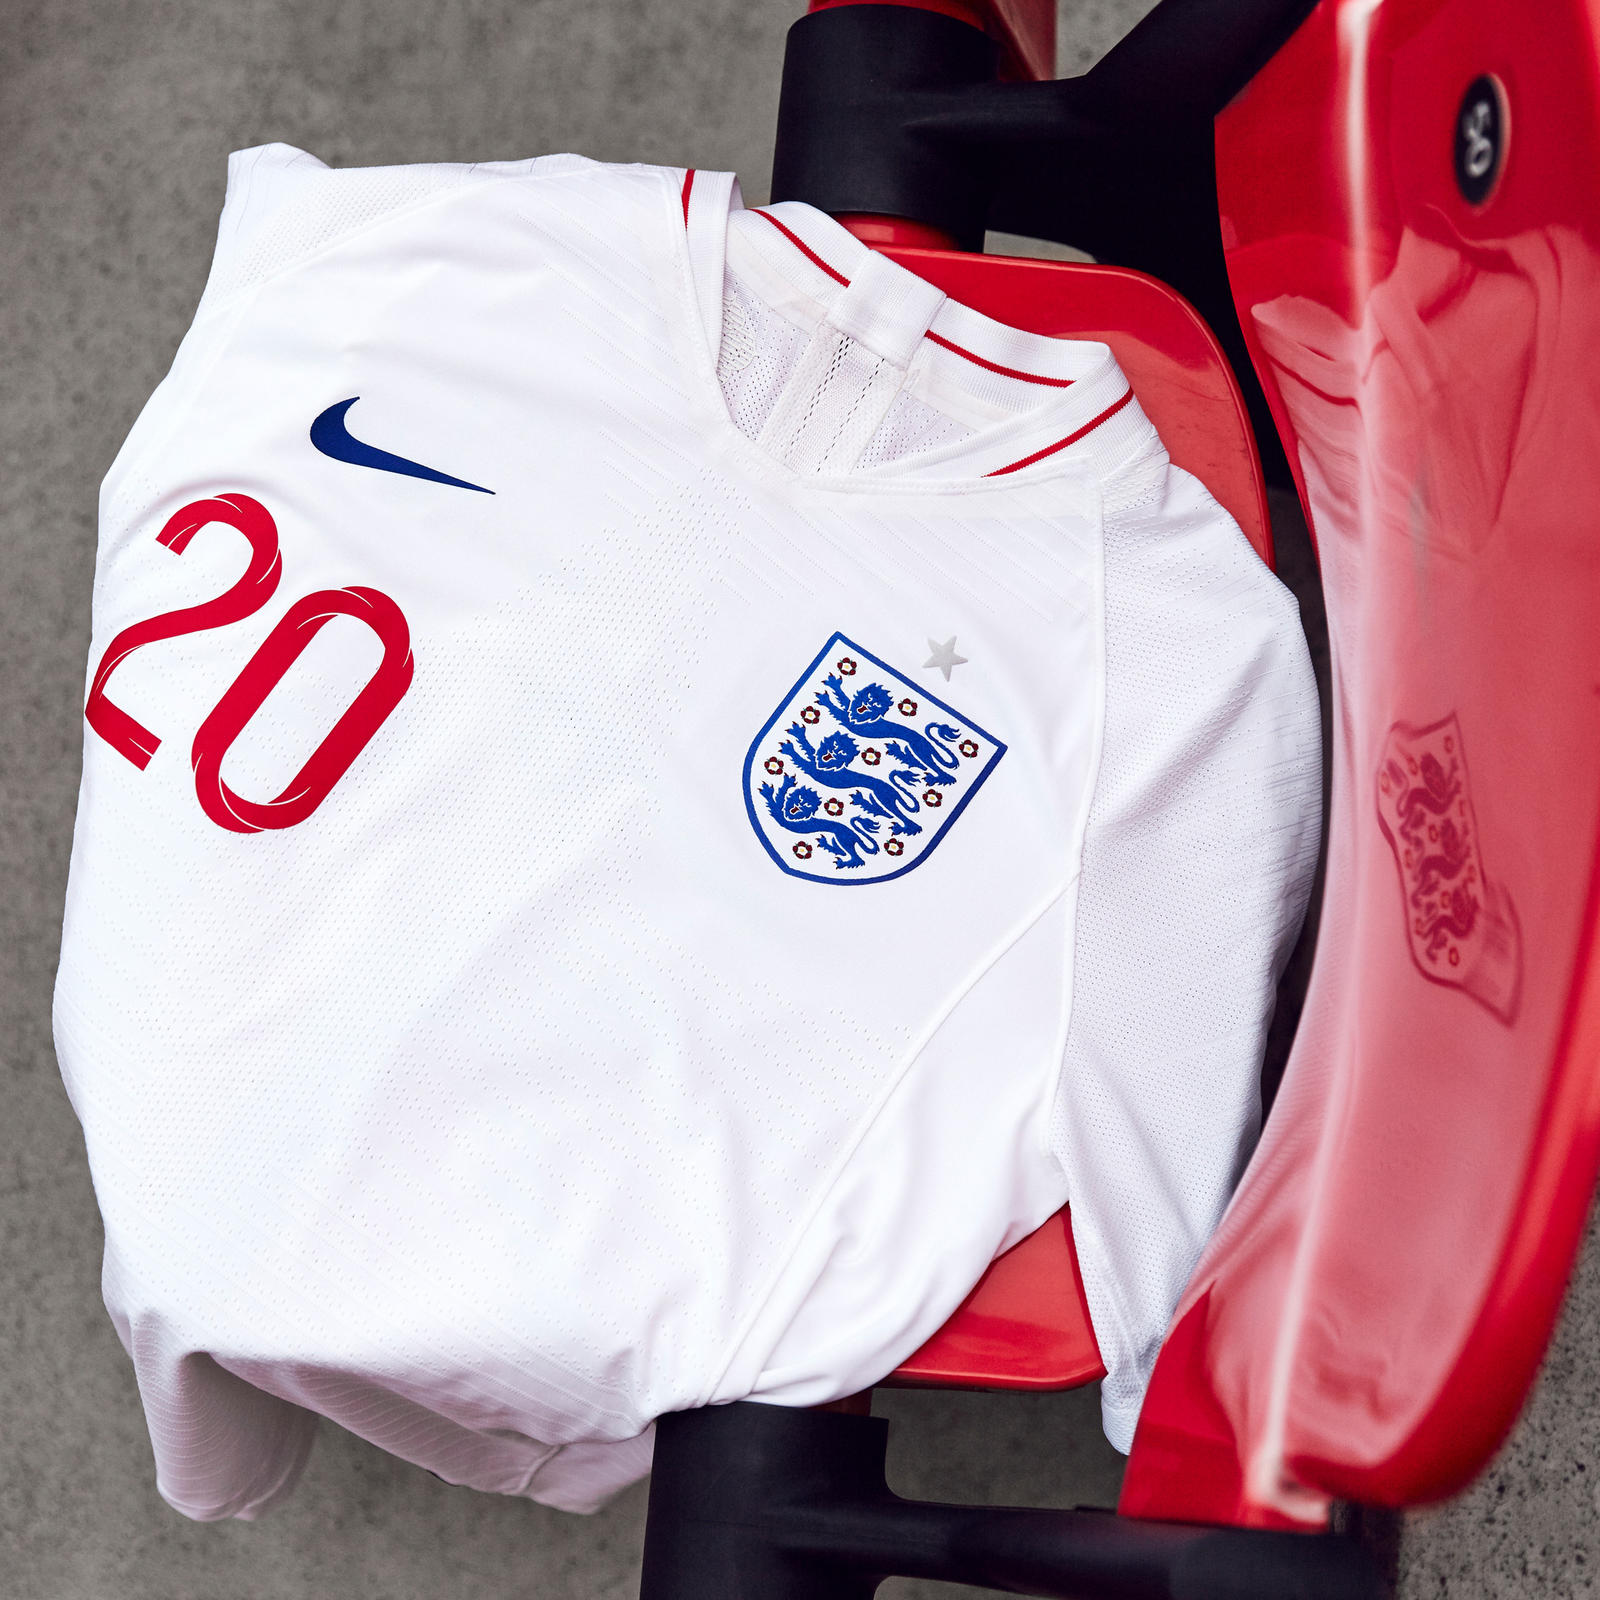 Nike-News-Football-Soccer-England-National-Team-Kit-9_square_1600.JPG